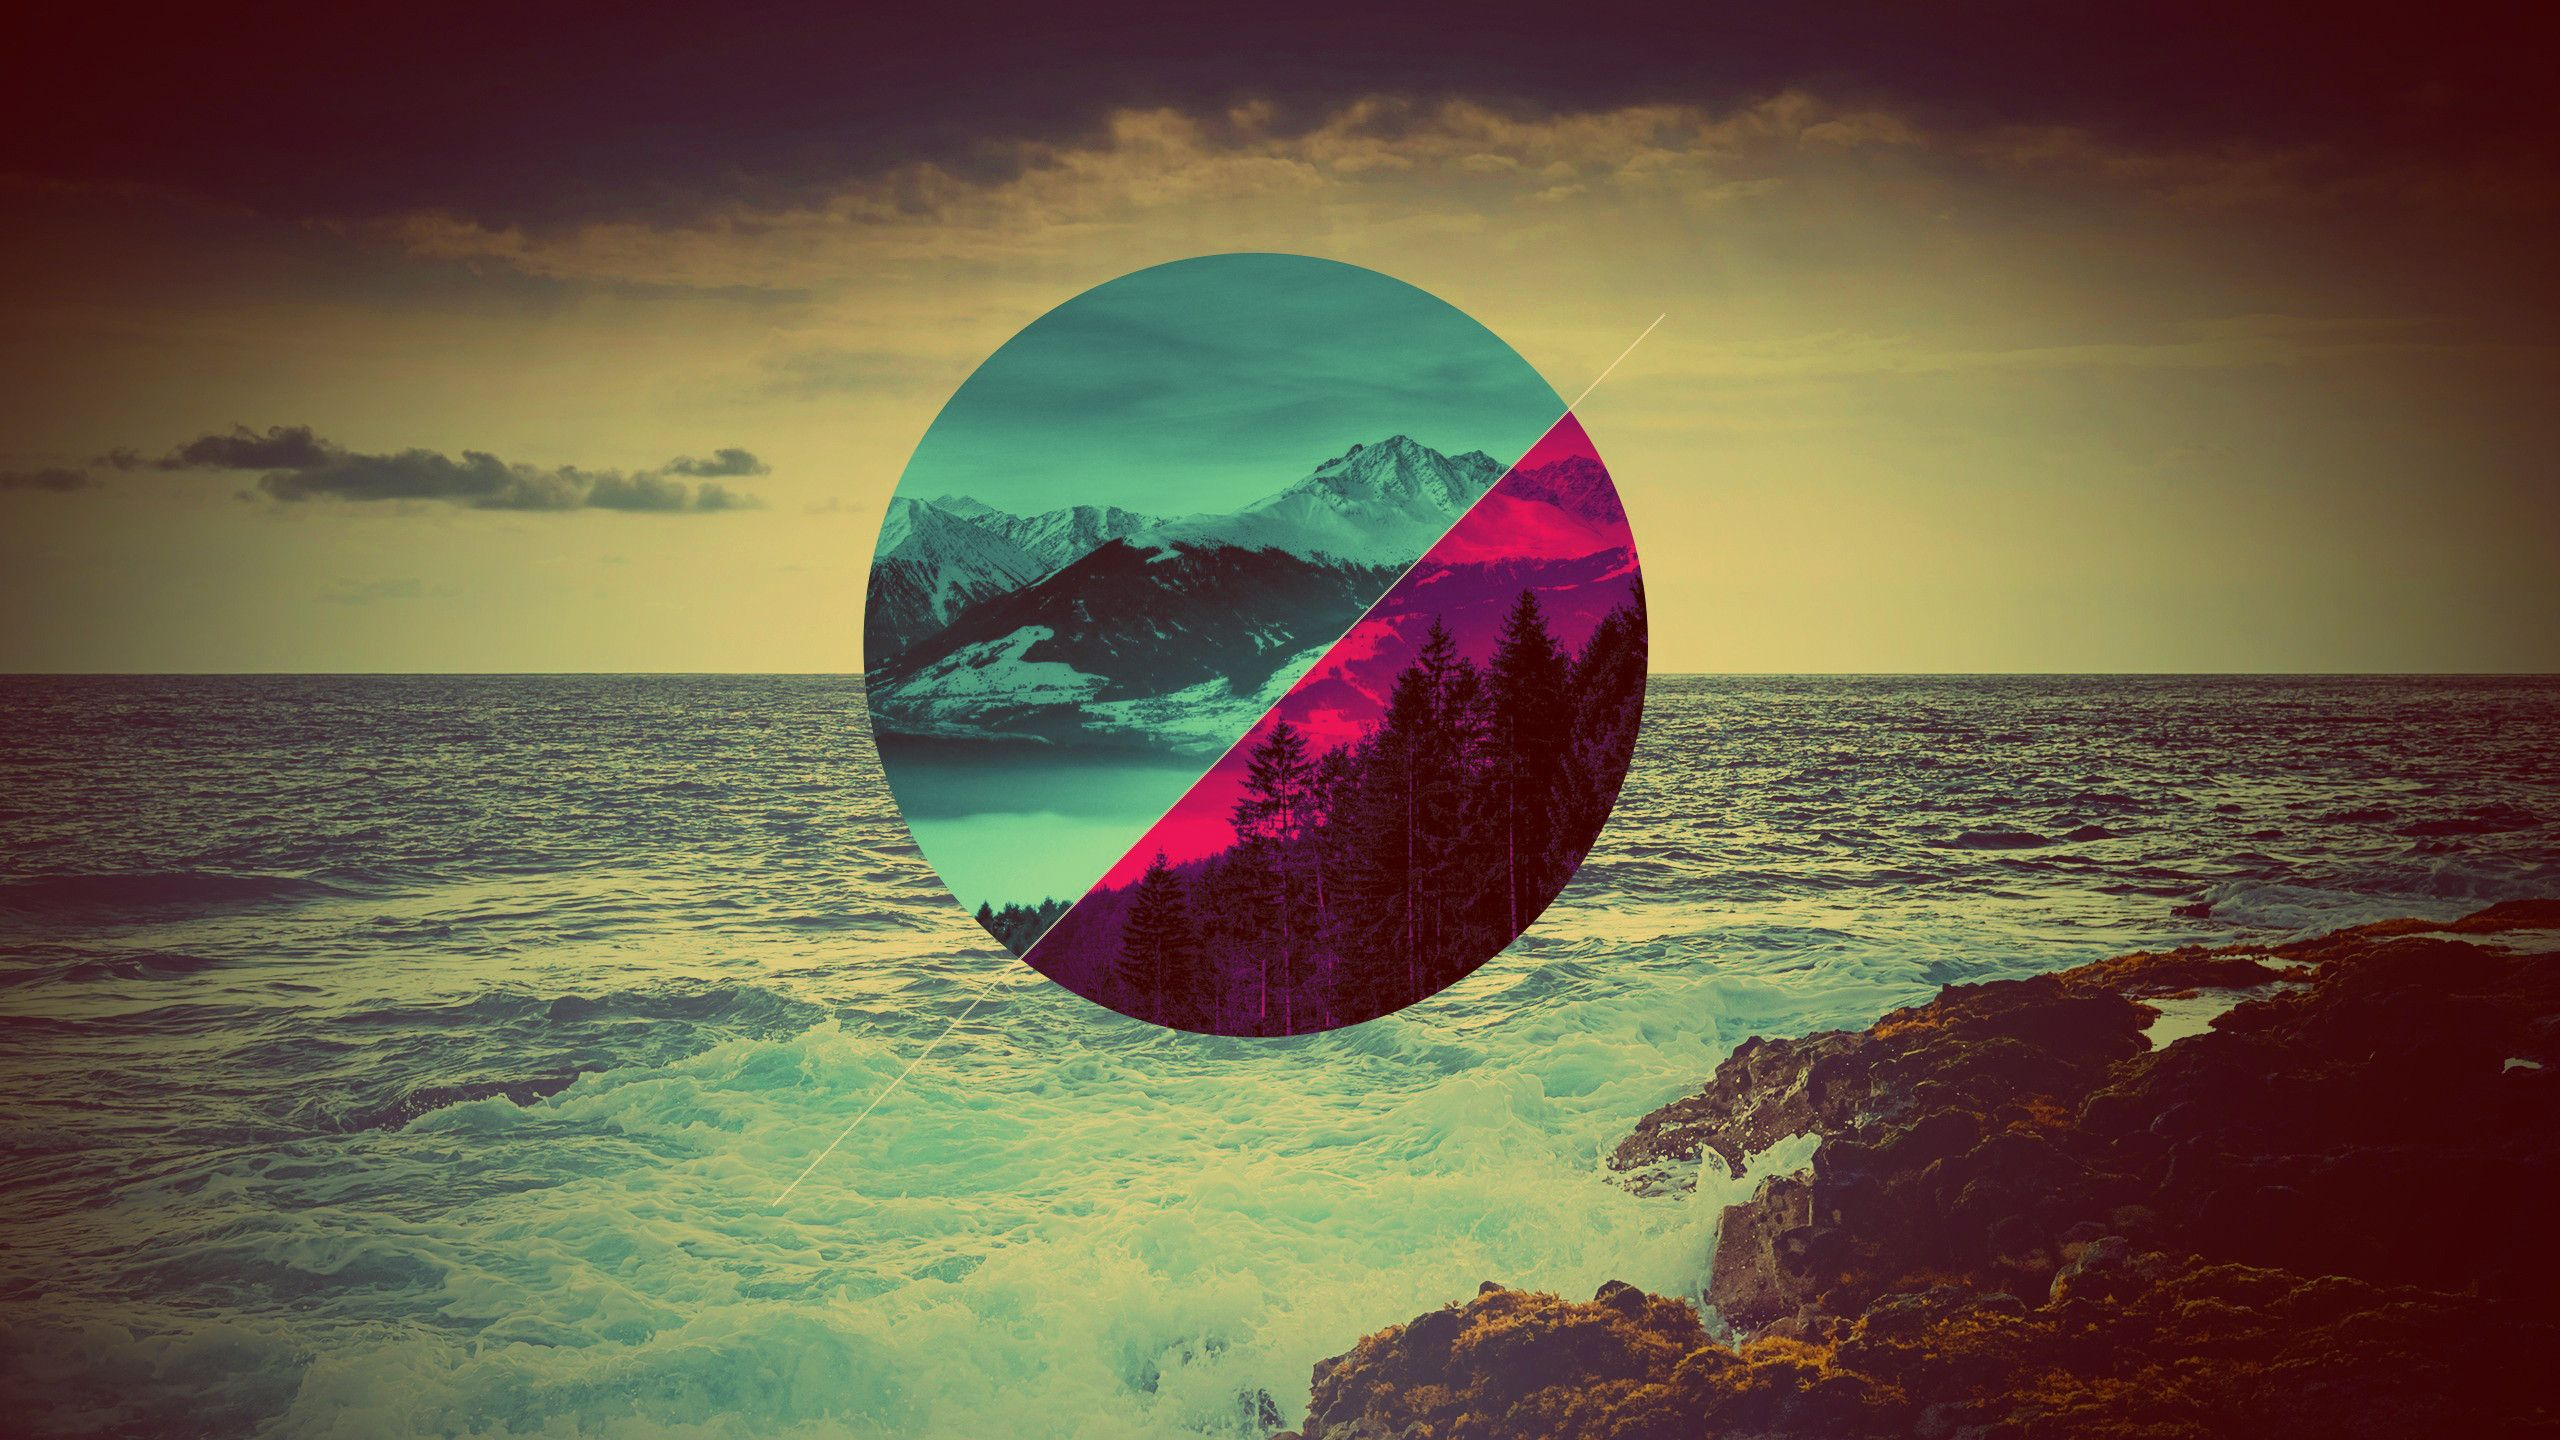 Hipster Computer Backgrounds - Wallpaper Cave | Wallpapers | Pinterest | Computer backgrounds ...